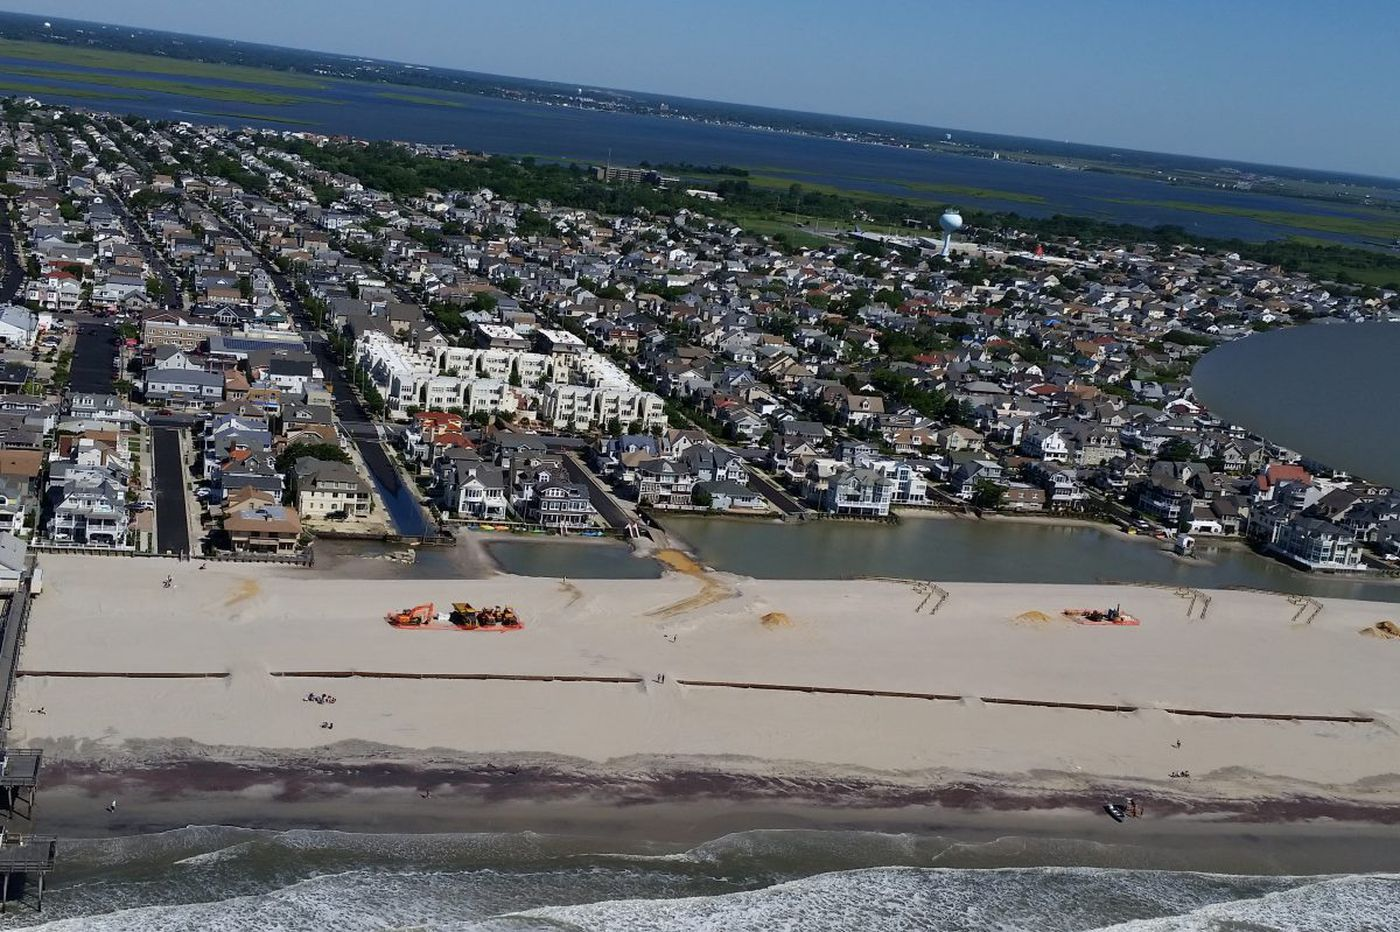 Margate in uproar over 'Lake Christie,' may go to court to halt dune work